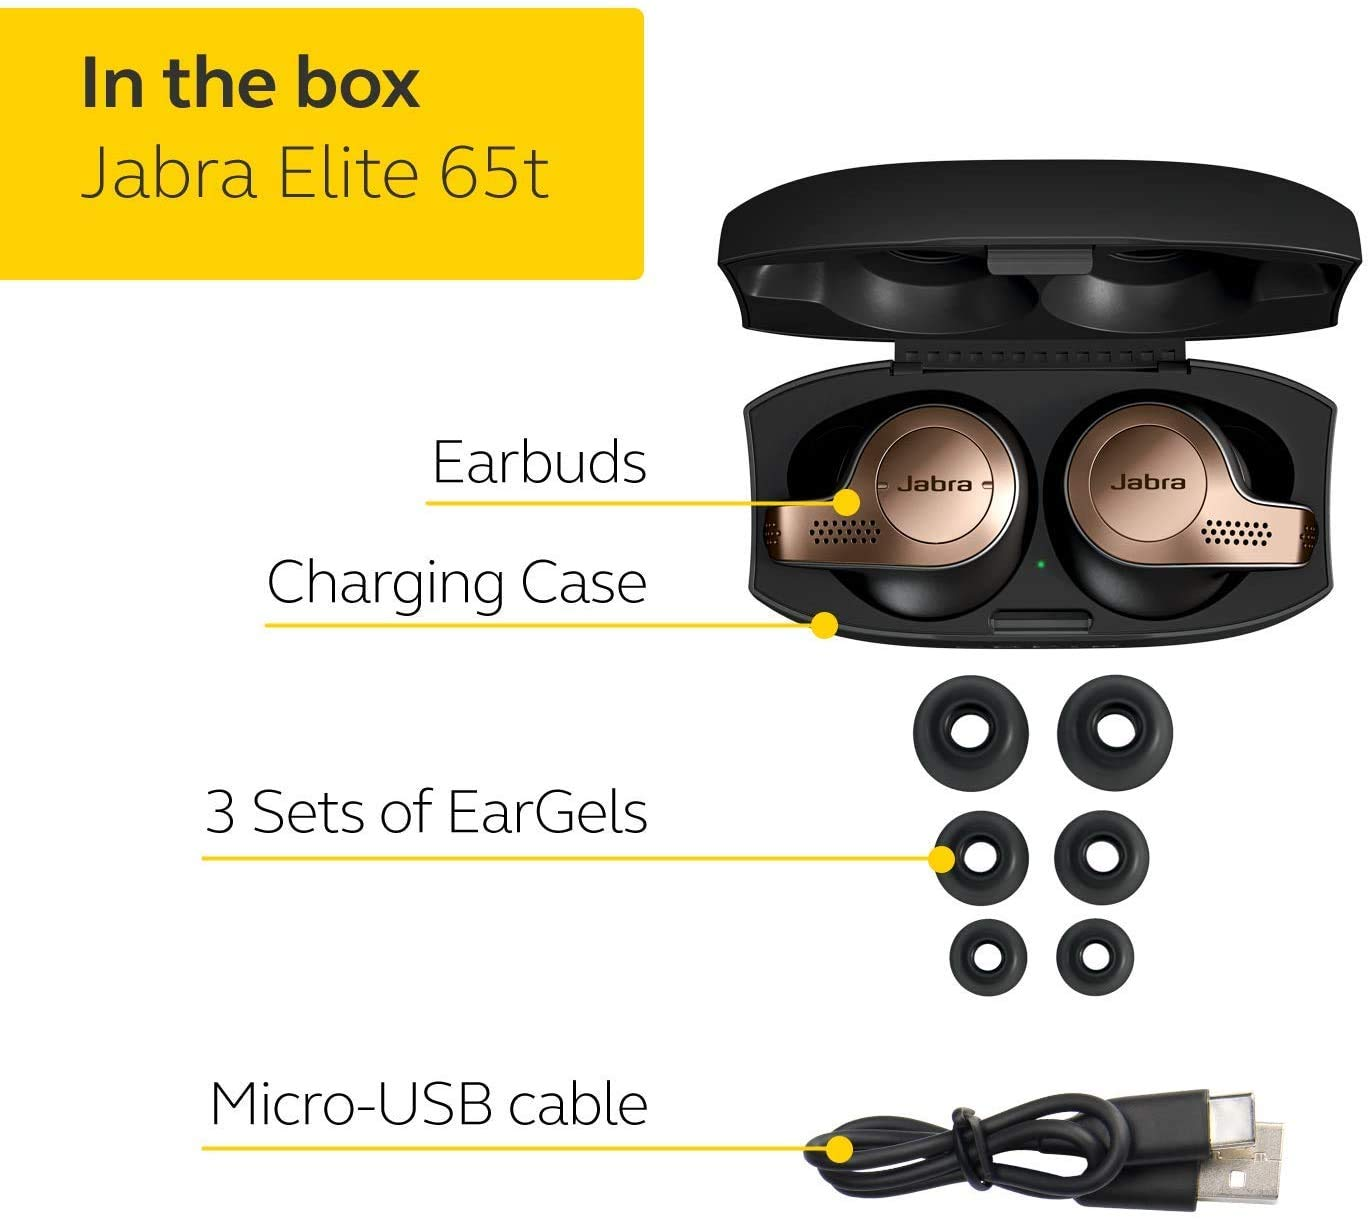 jabra-elite-65t-alexa-enabled-true-wireless-earbuds-with-charging-case-15-hours-battery